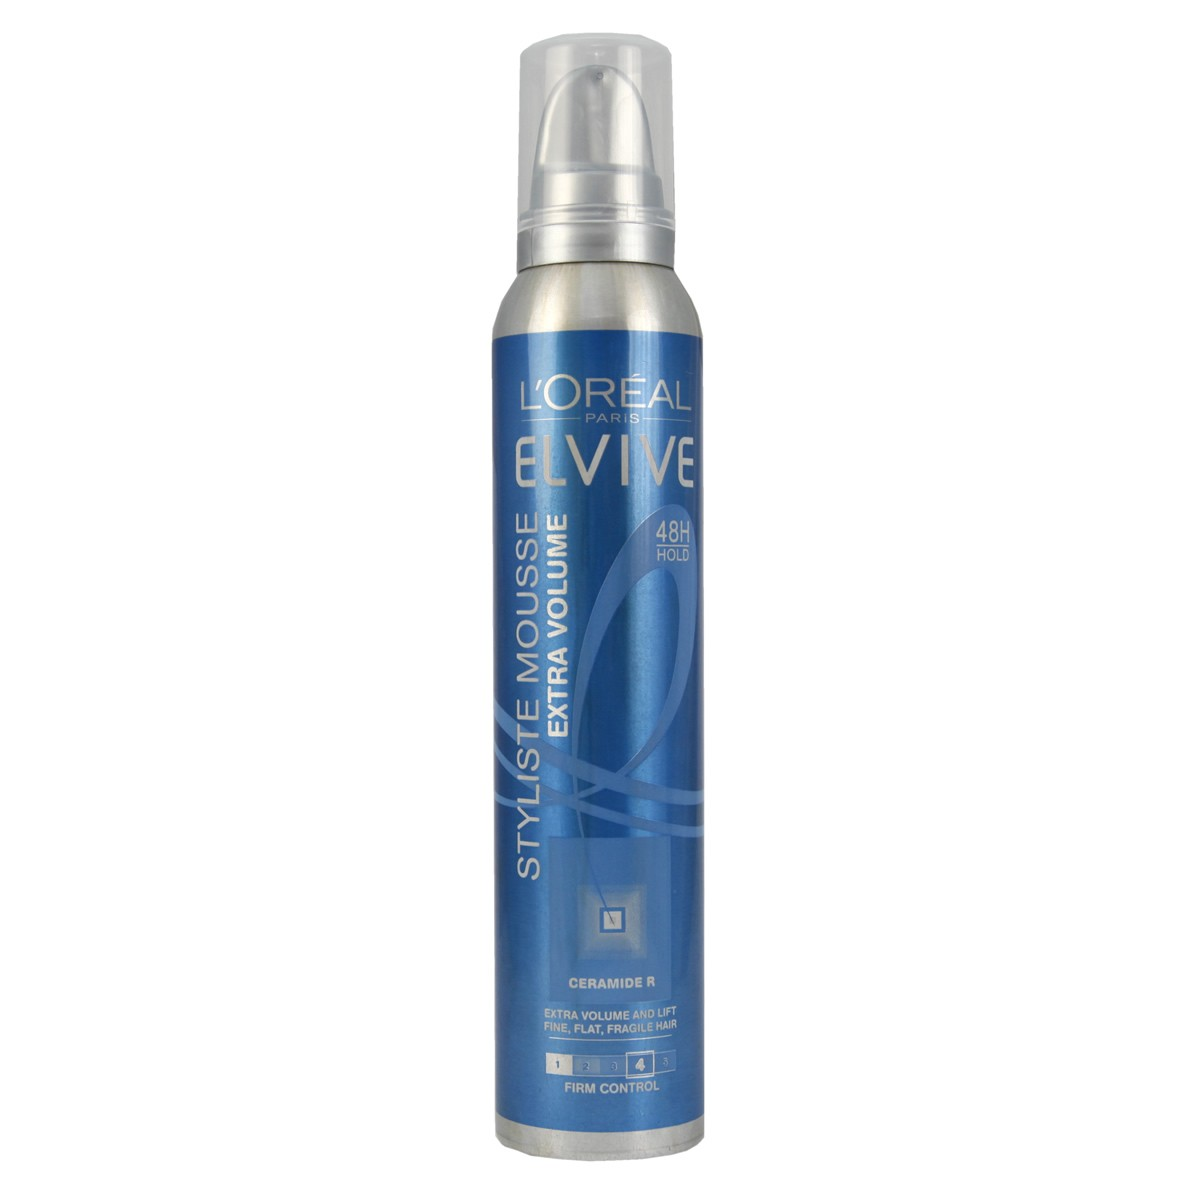 L'Oreal Paris Elvive Styliste Ceramide-R Firm Control Mousse